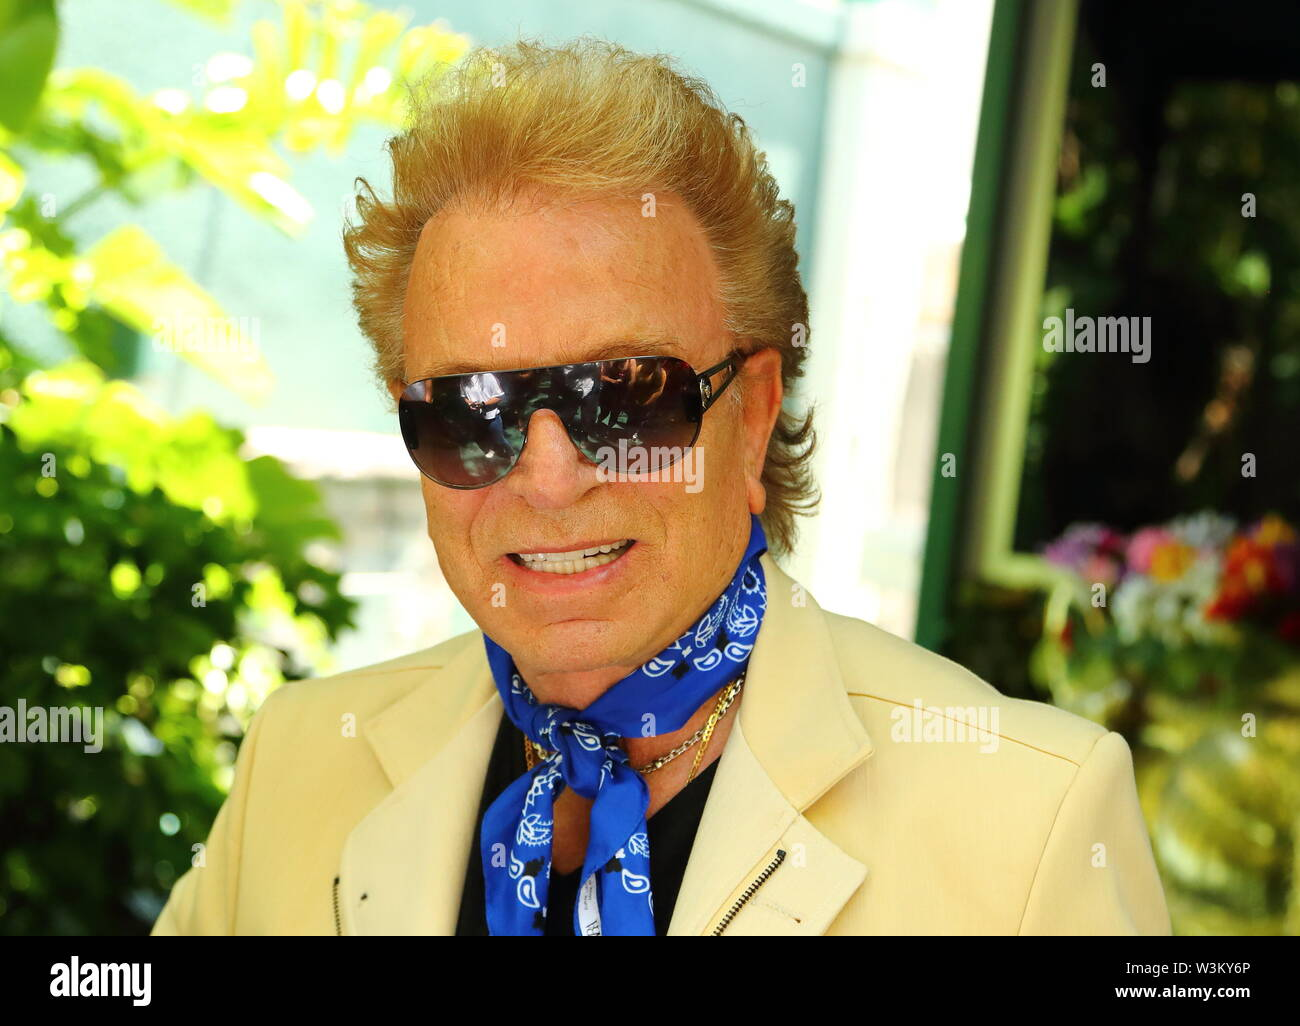 magician-siedfried-of-siegfried-roy-in-their-secret-garden-displaying-dolphins-and-big-cats-at-the-mirage-las-vegas-nevada-usa-W3KY6P.jpg